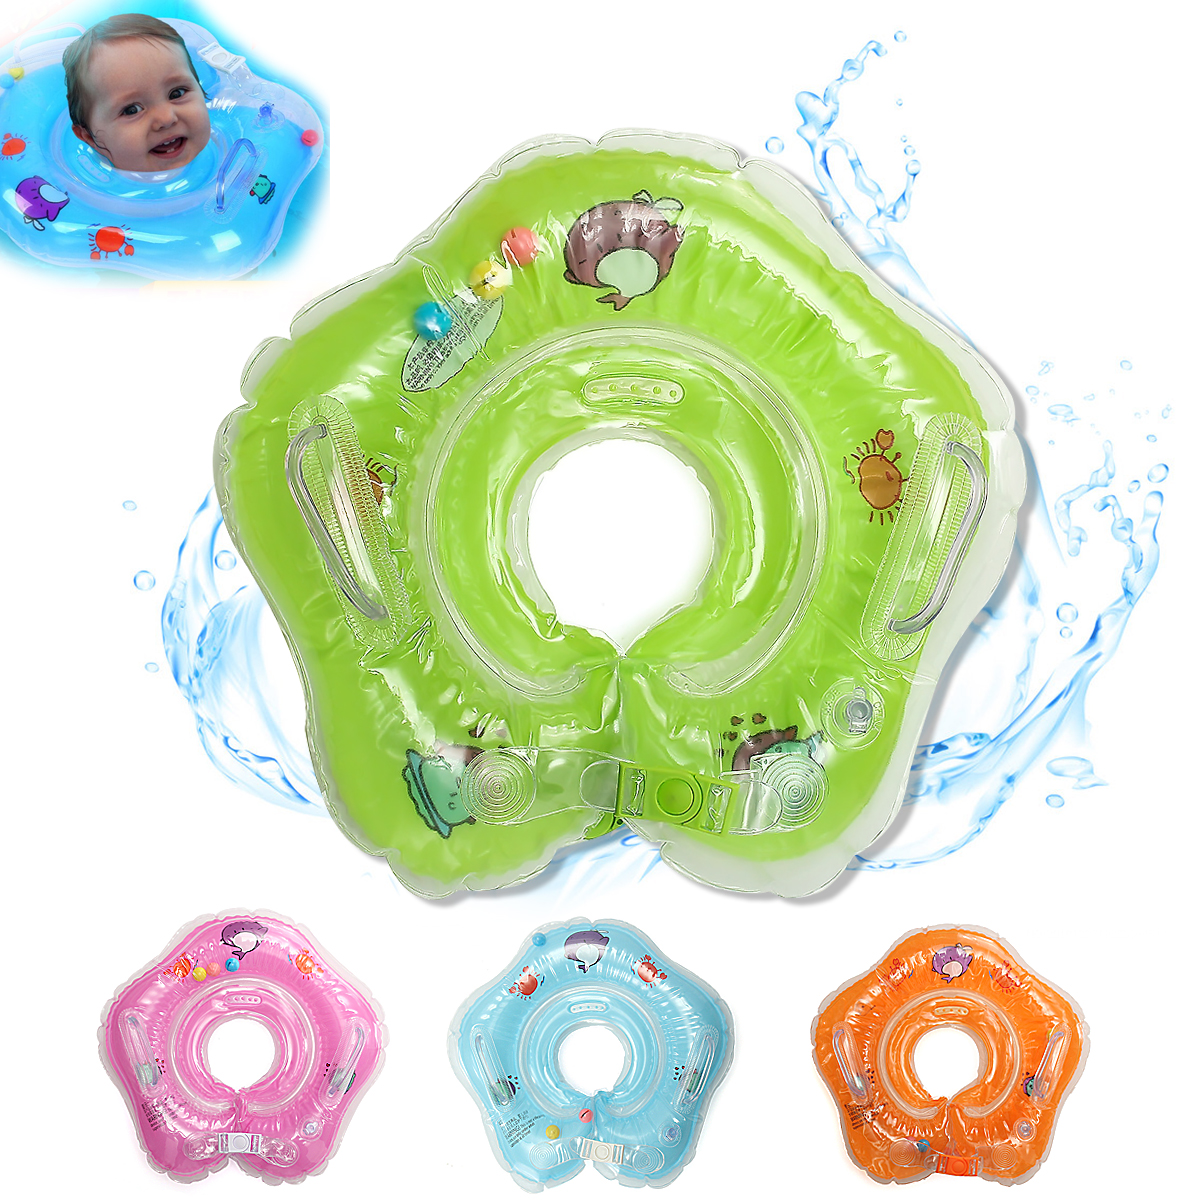 IPRee Baby Infant Swimming Pool Bath Neck Floating Inflatable Ring Built-in Belt